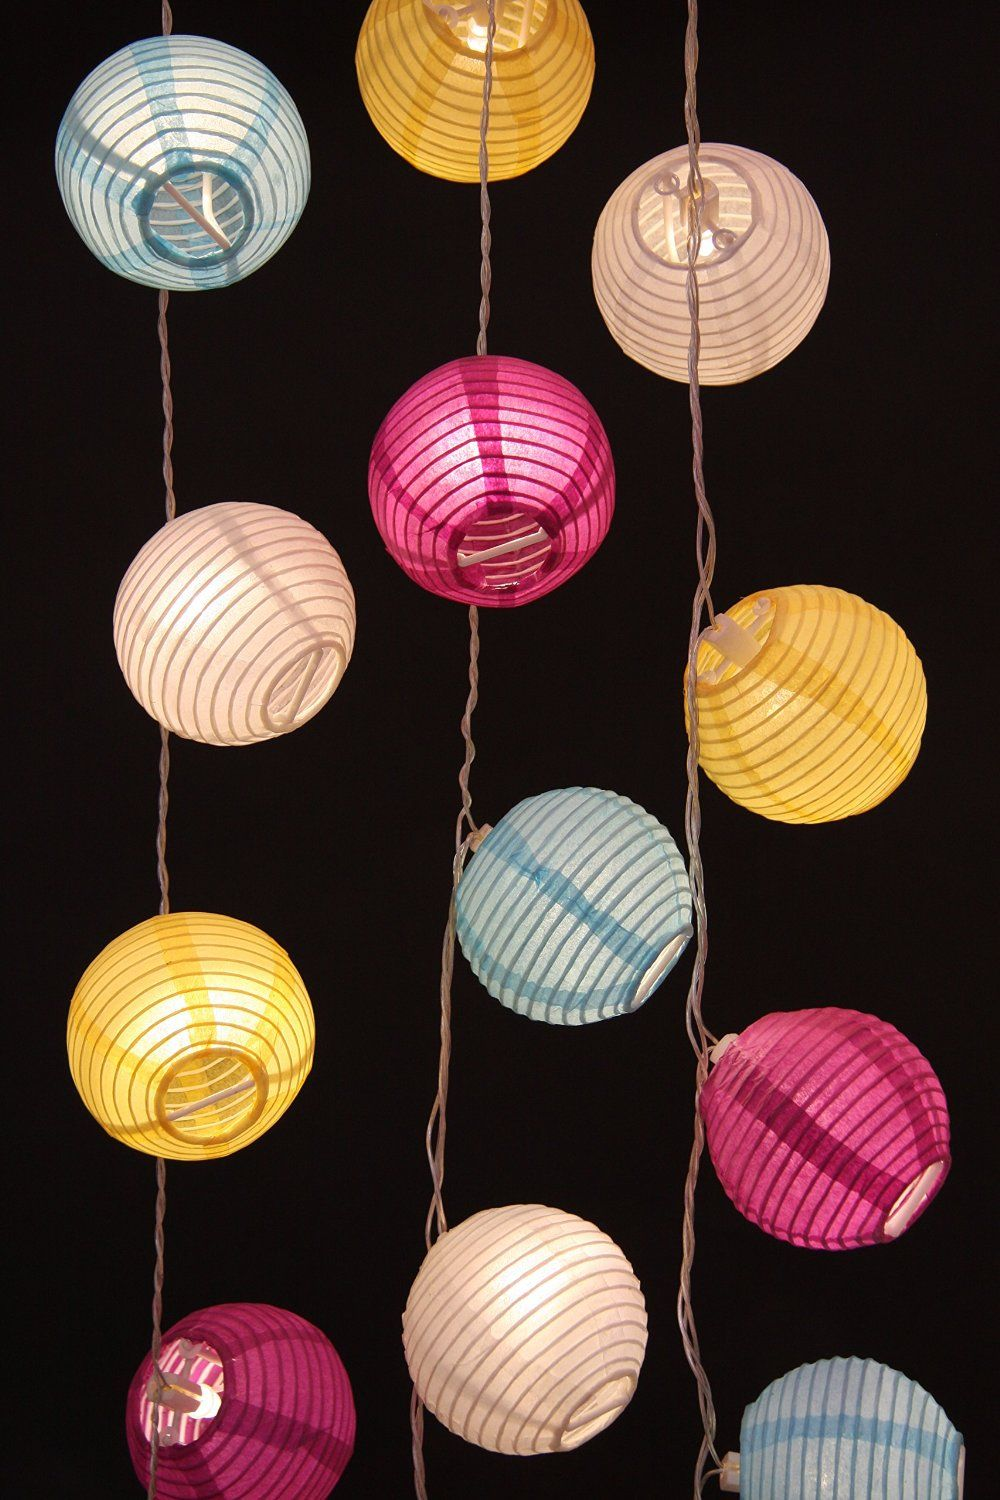 Multi Coloured Paper Lantern Led Battery Operated Party Light Chain Co Uk Lighting